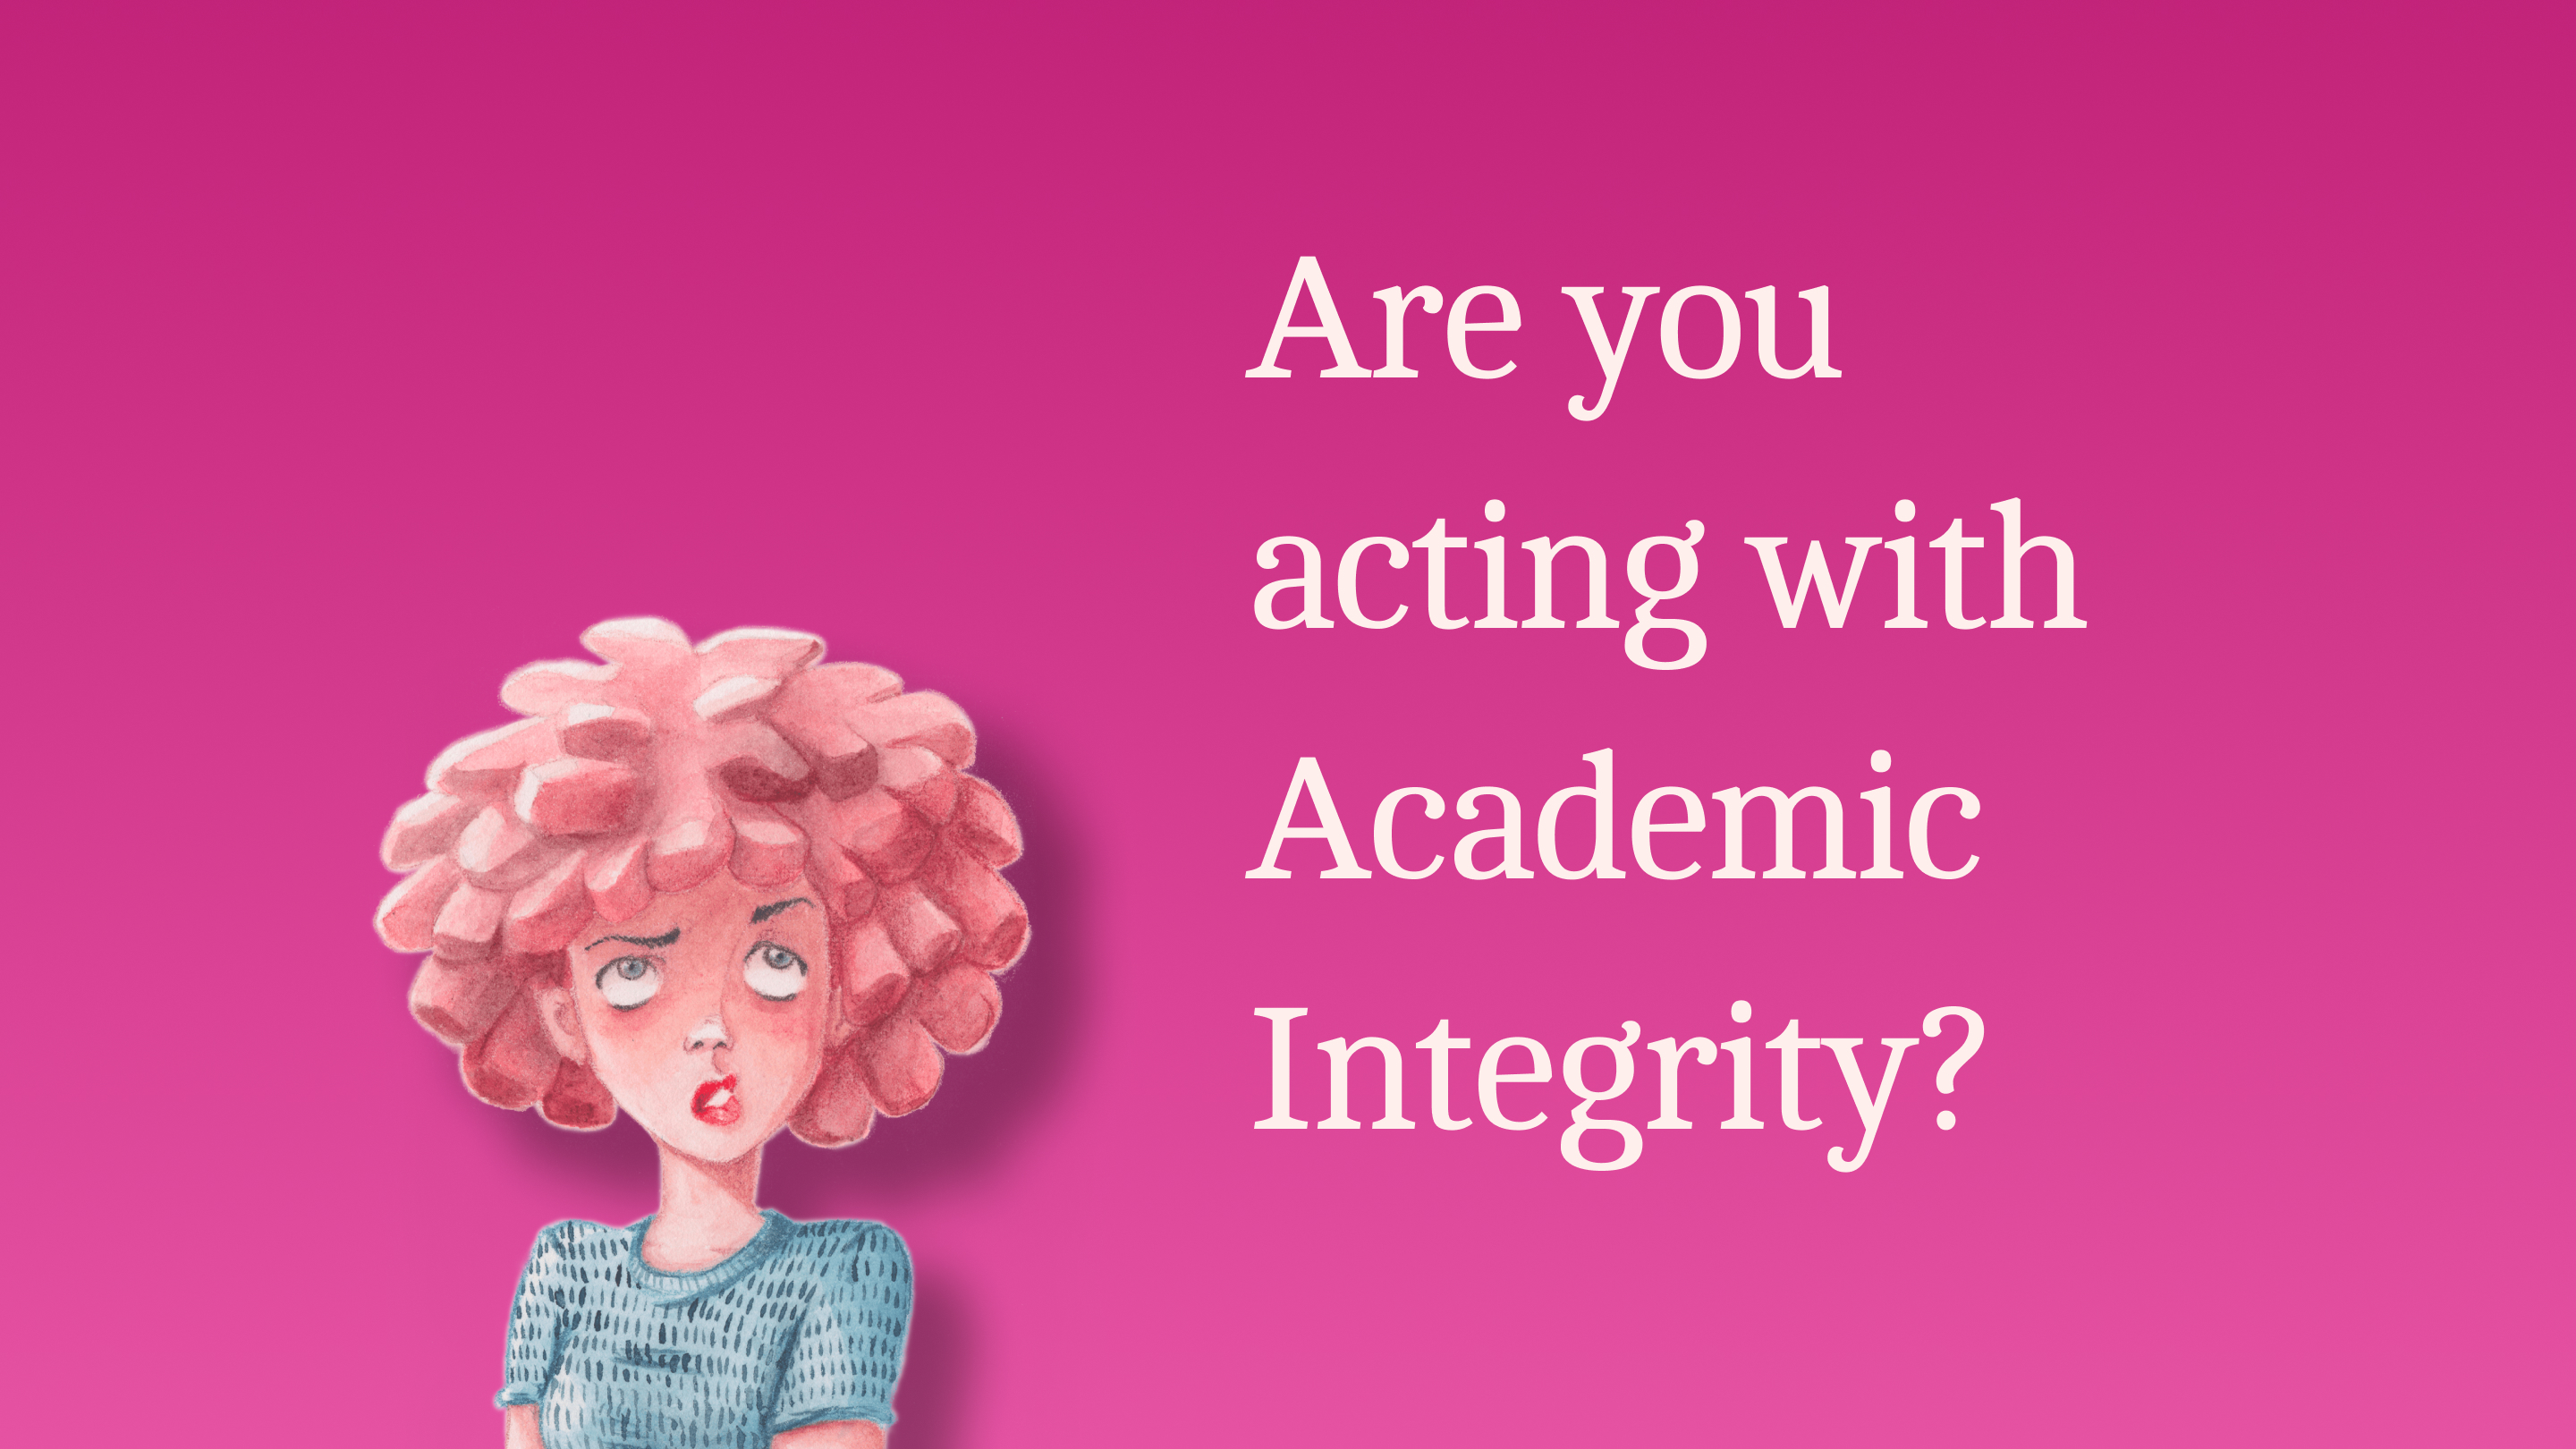 Are you acting with Academic Integrity